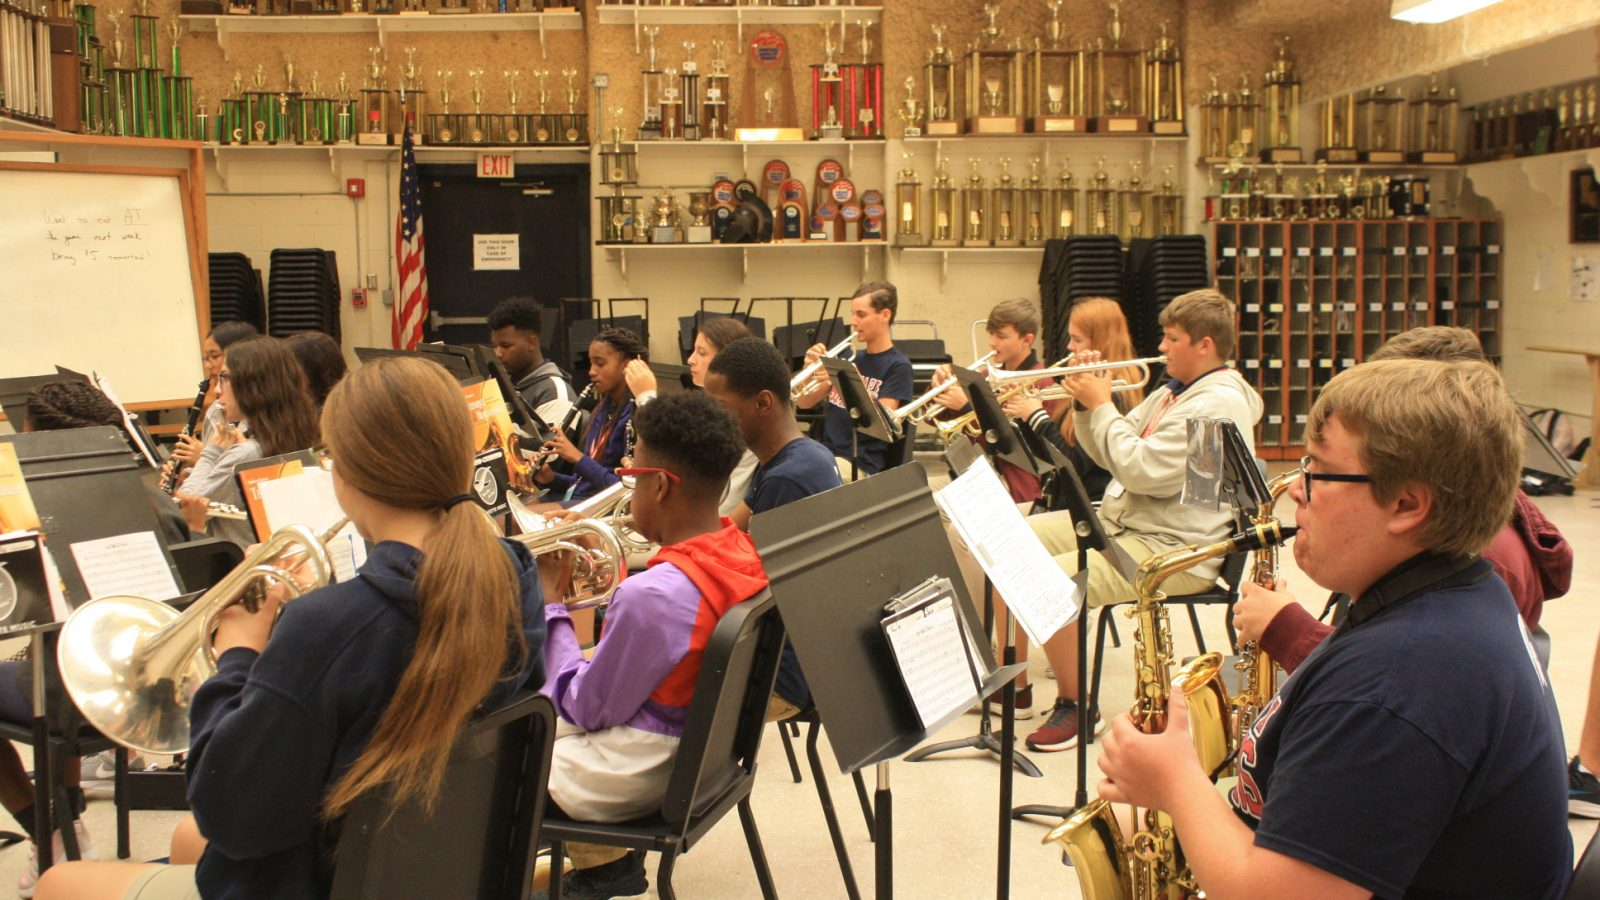 Band Students Practicing